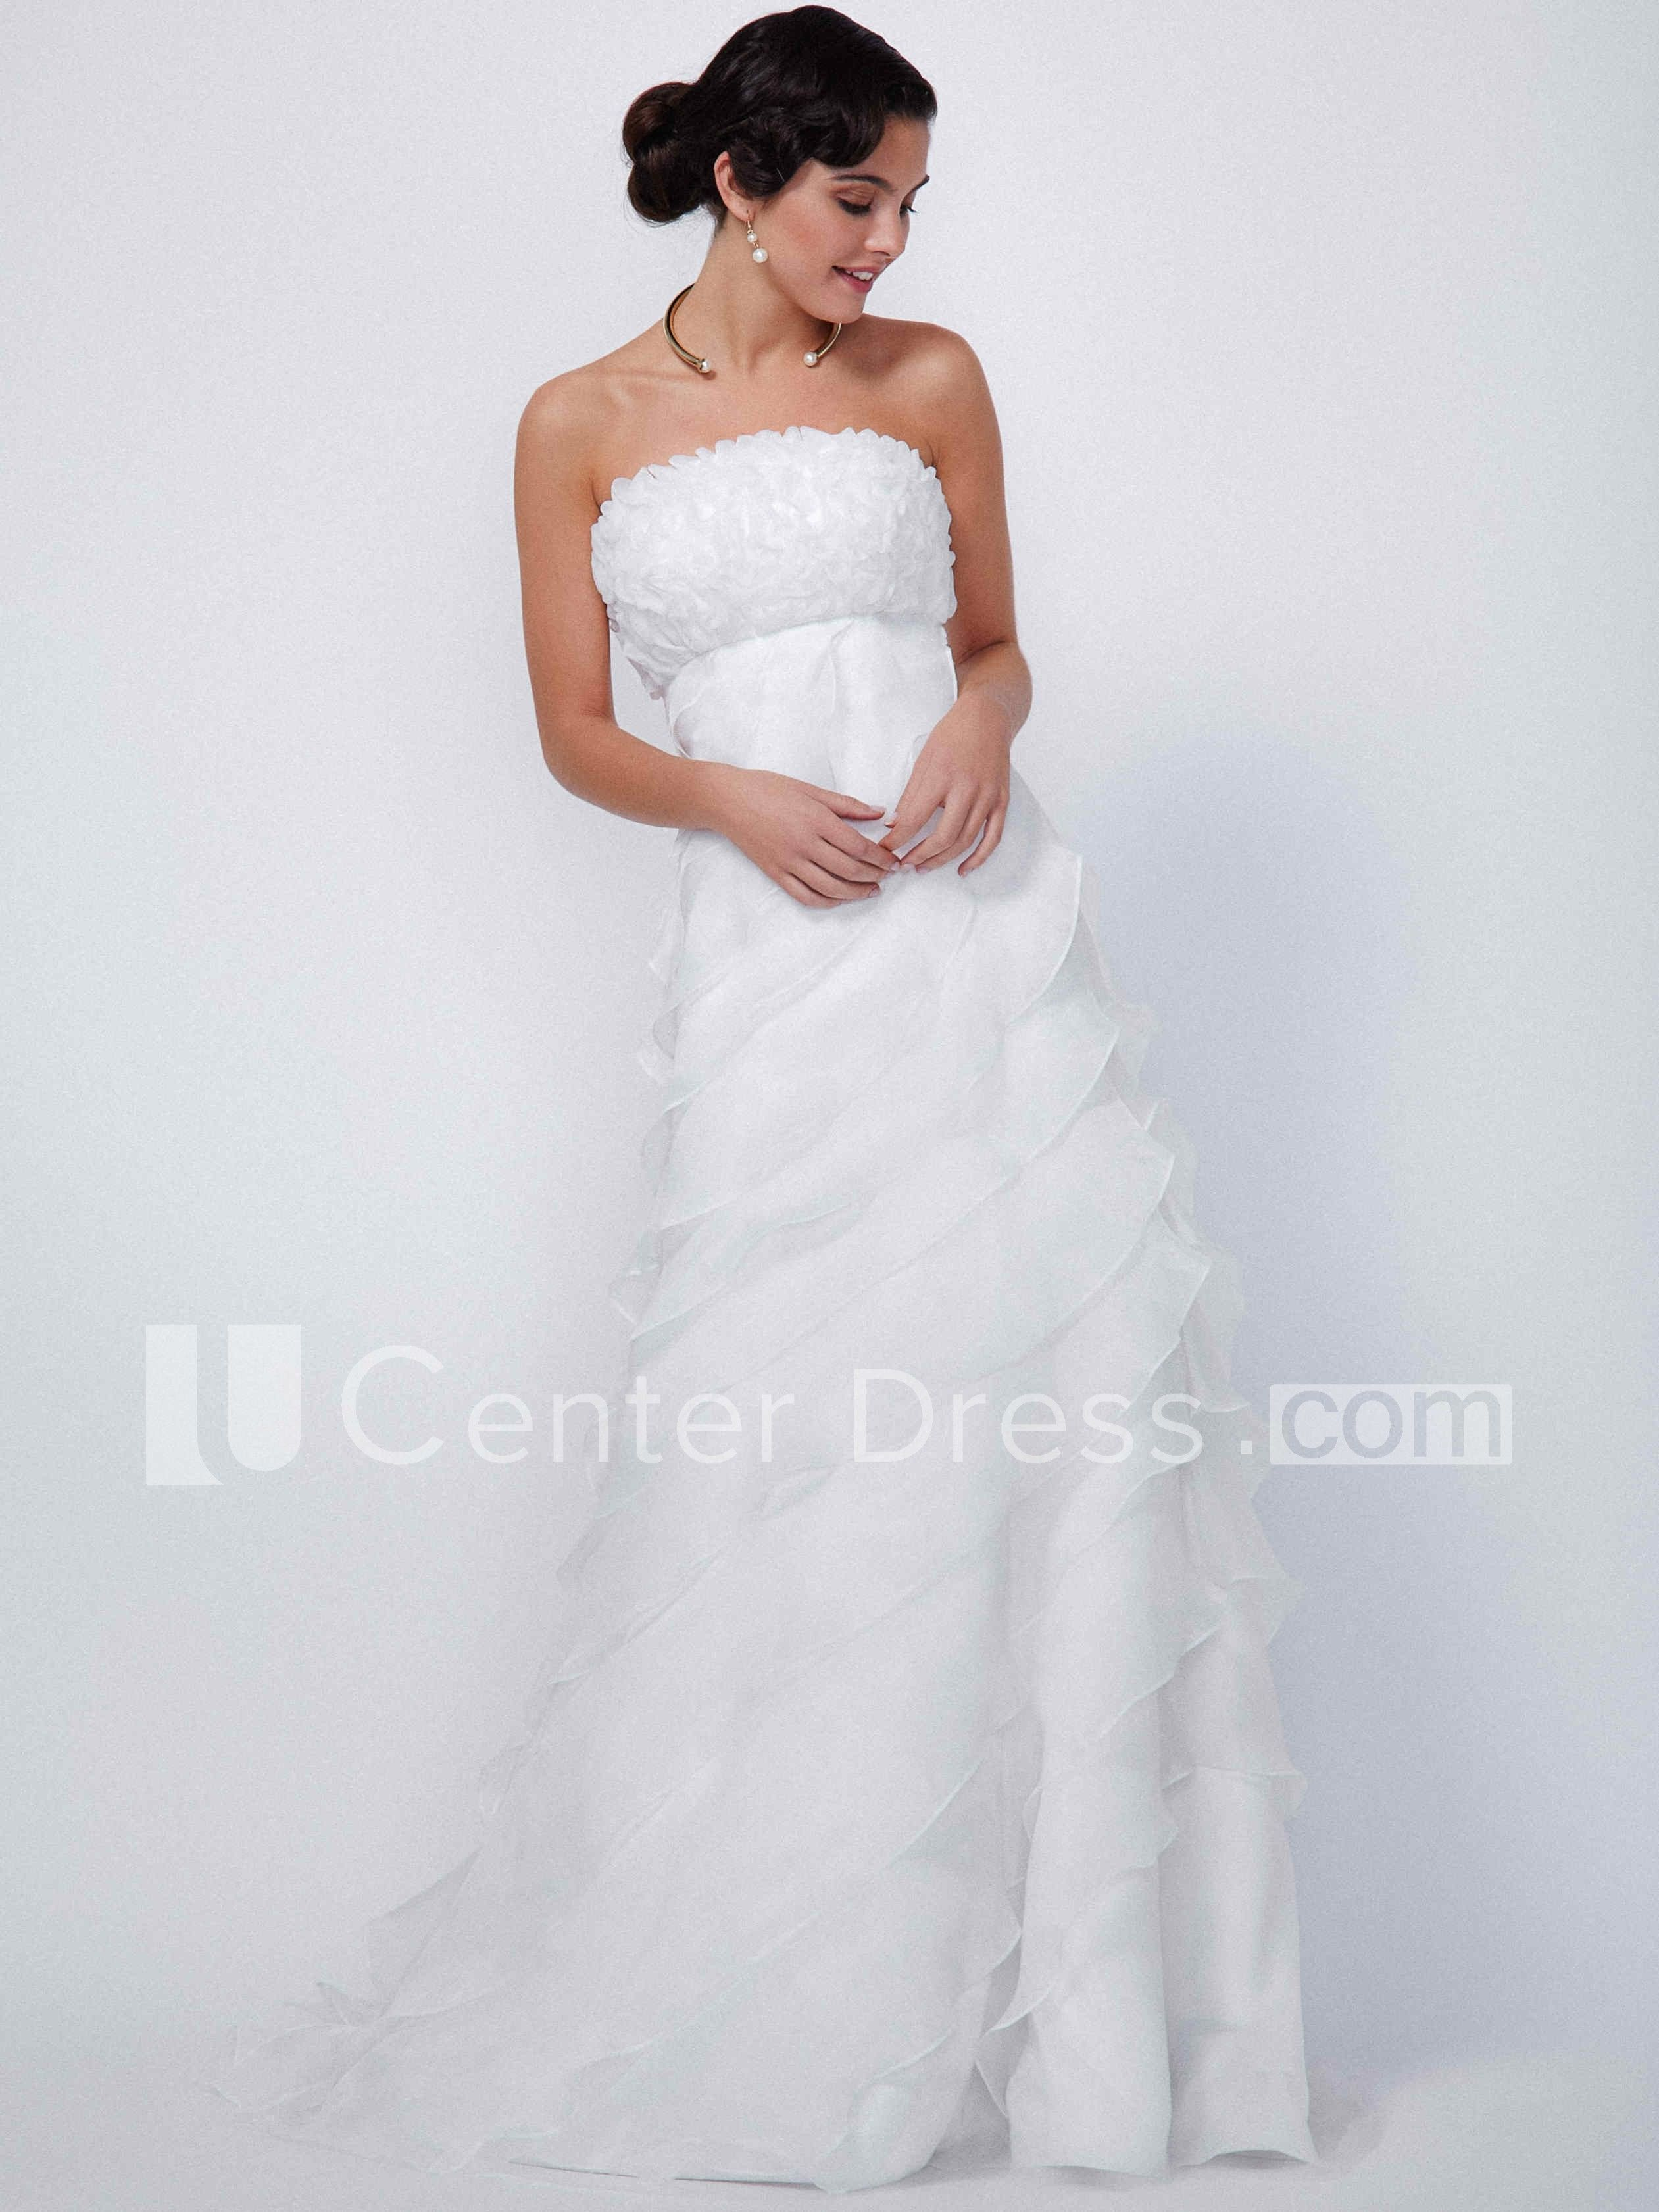 $151.29-Sexy A-Line Sleeveless Strapless Ruffled Long Organza Wedding Dress. http://www.ucenterdress.com/a-line-sleeveless-strapless-rufflesd-floor-length-organza-wedding-dress-with-tiers-pMK_100141.html.  Shop for Best wedding dresses, Lace wedding dress, modest wedding dress, strapless wedding dress, backless wedding dress, wedding dress with sleeves, mermaid wedding dress, plus size wedding dress, We have great 2016 fall Wedding Dresses on sale. Buy Wedding Dresses online at…